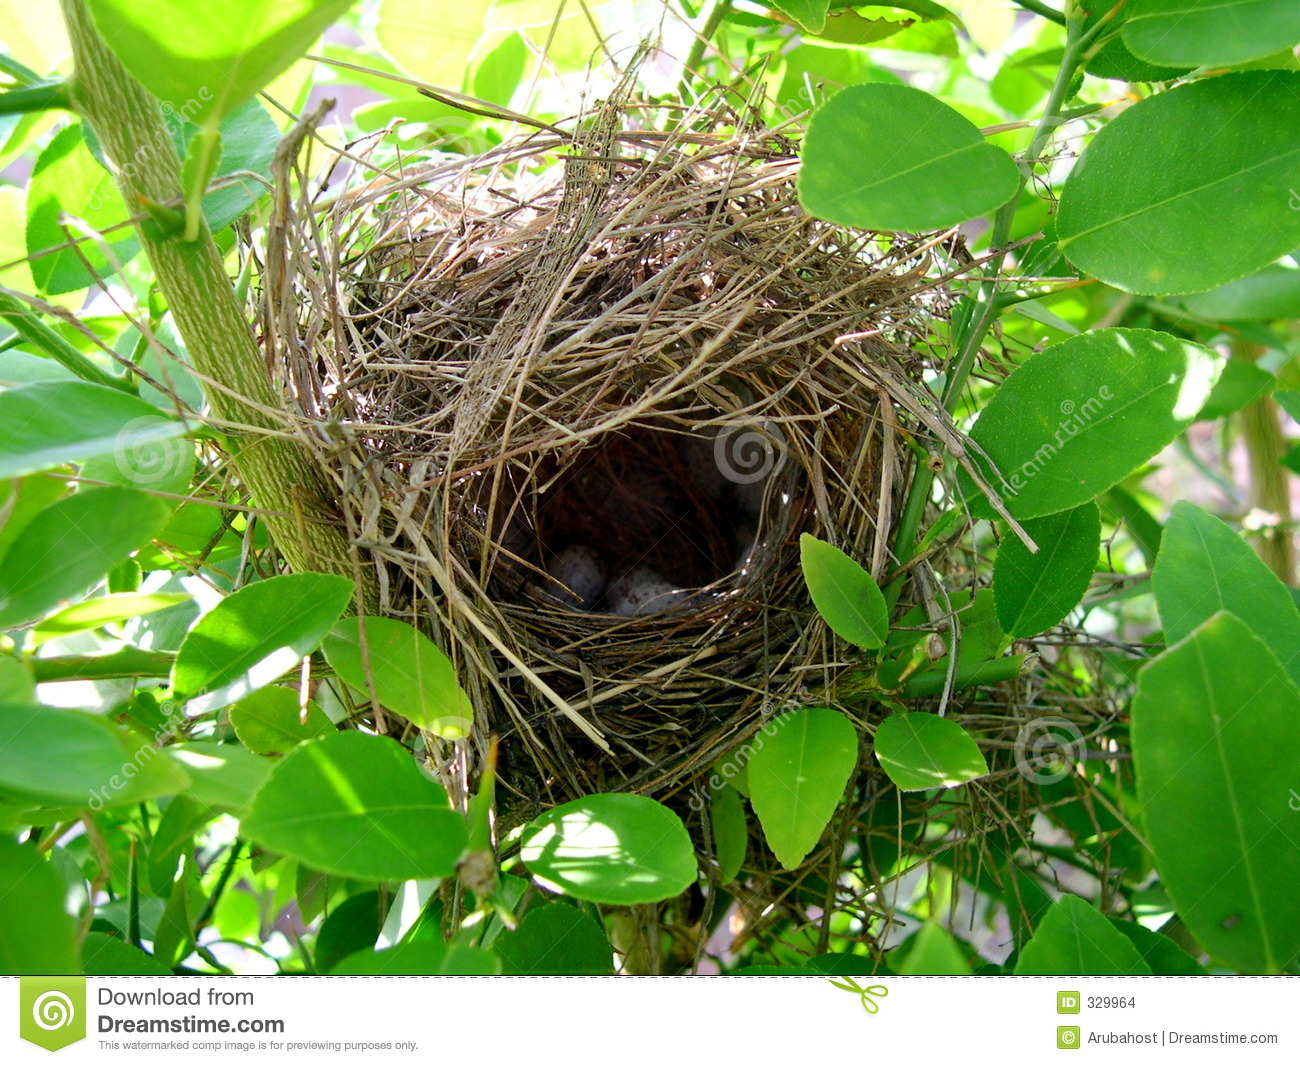 Birds nest in lime tree with couple of eggs inside